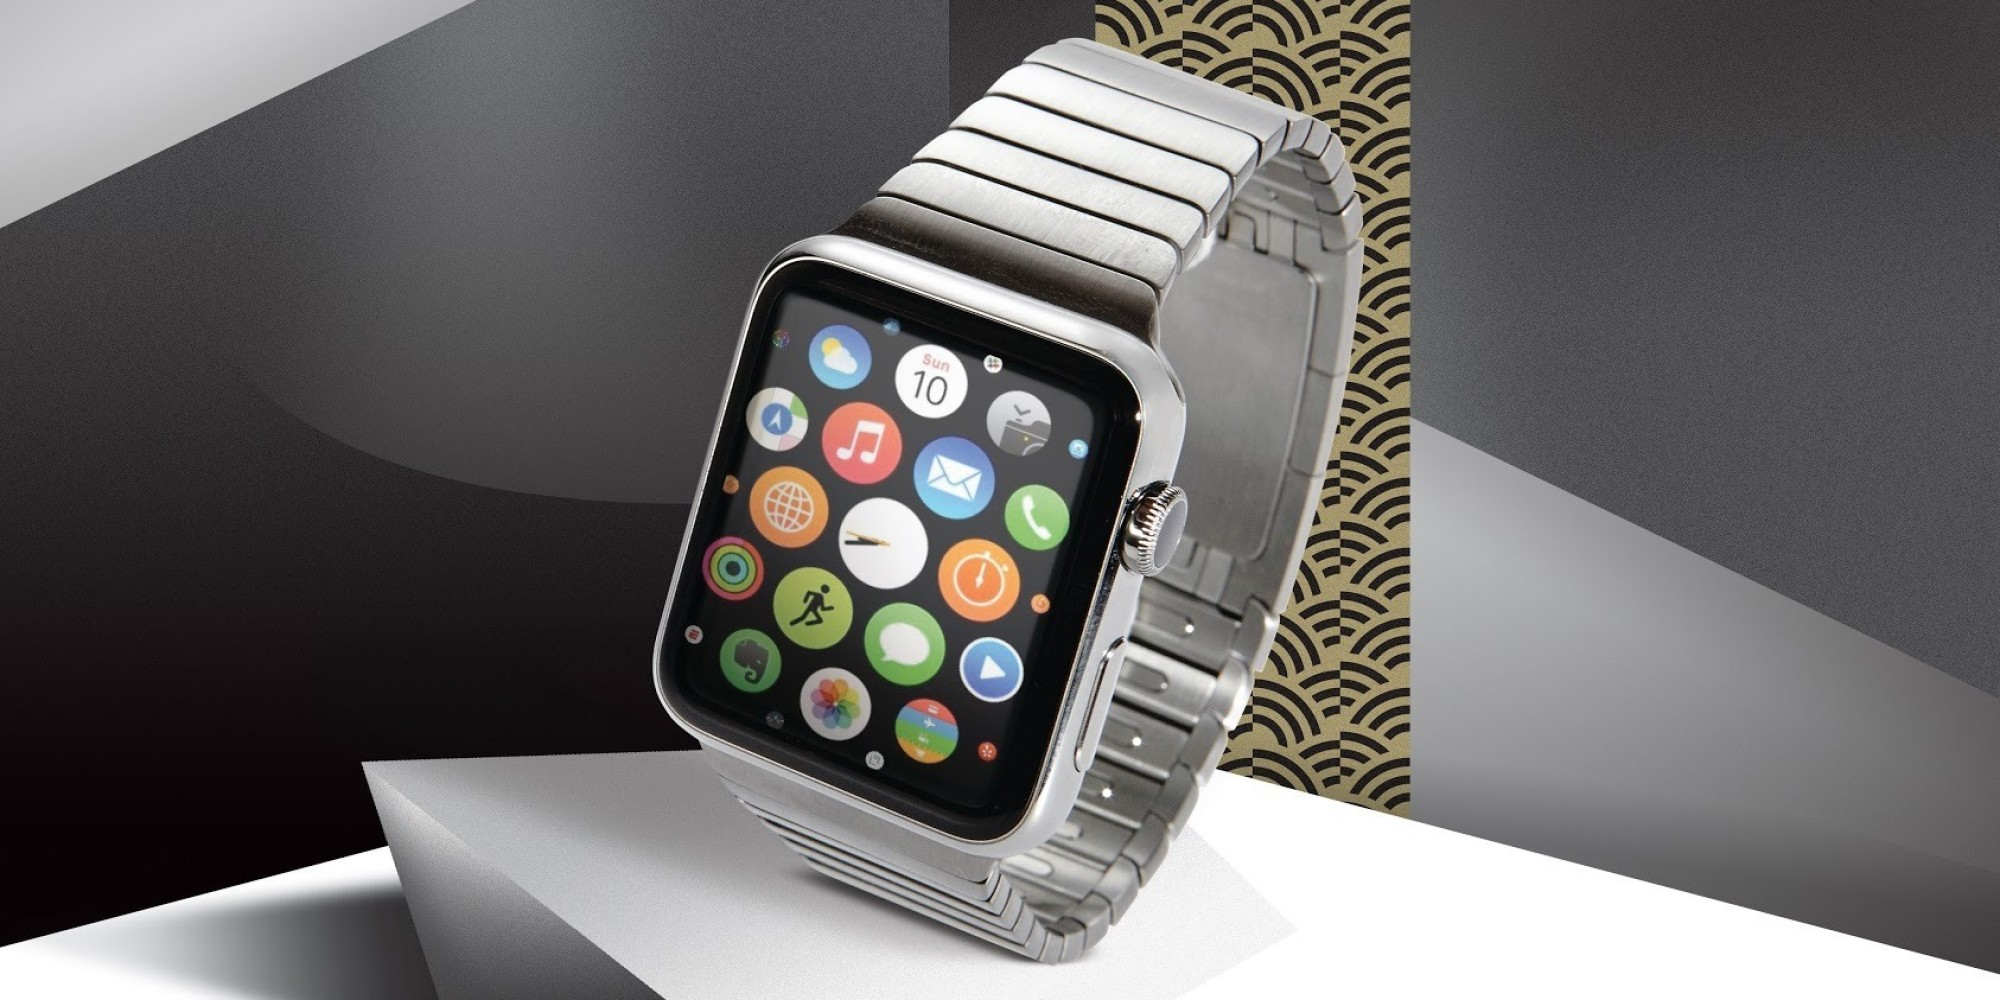 Coolest Gadgets 2015 For Sale Best Gadgets 2015 Apple Watch Takes Home Gadget Of The